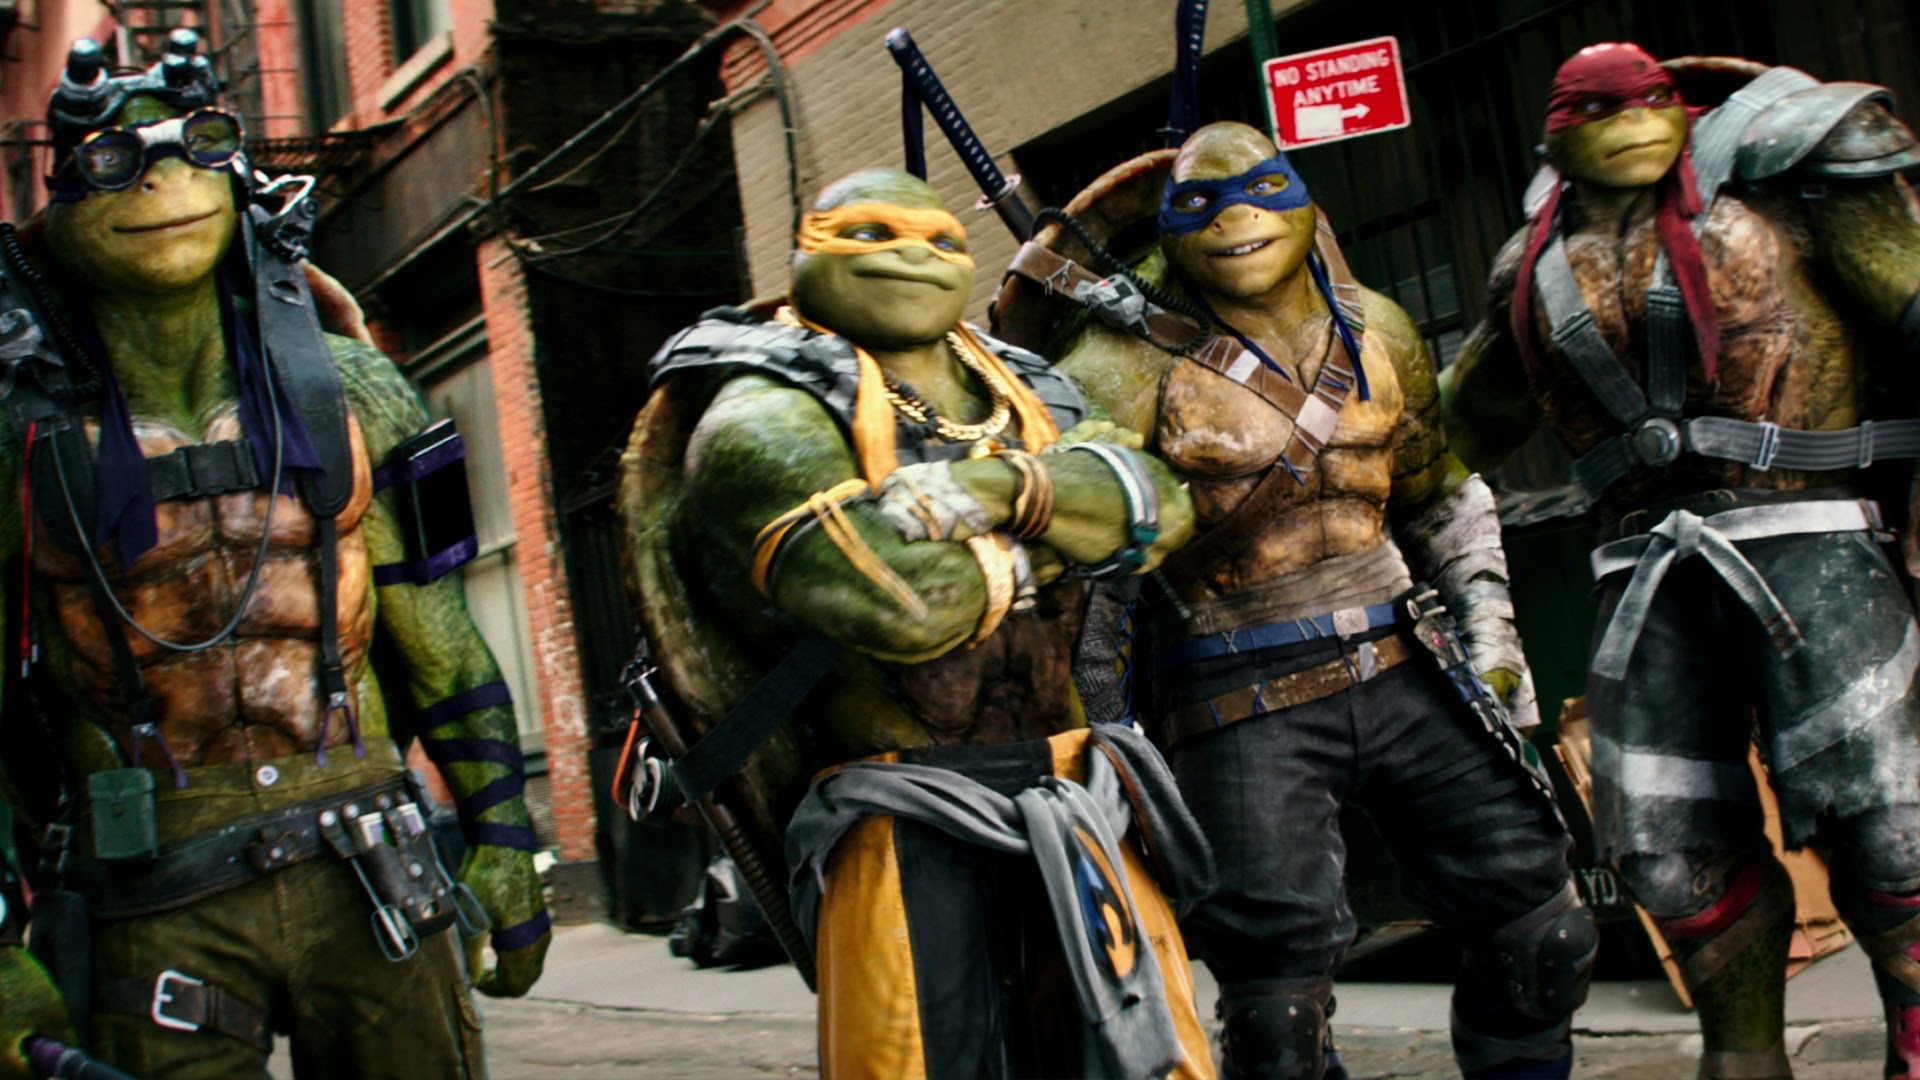 Teenage Mutant Ninja Turtles: Out of the Shadows   Trailer #1   Paramount Pictures International